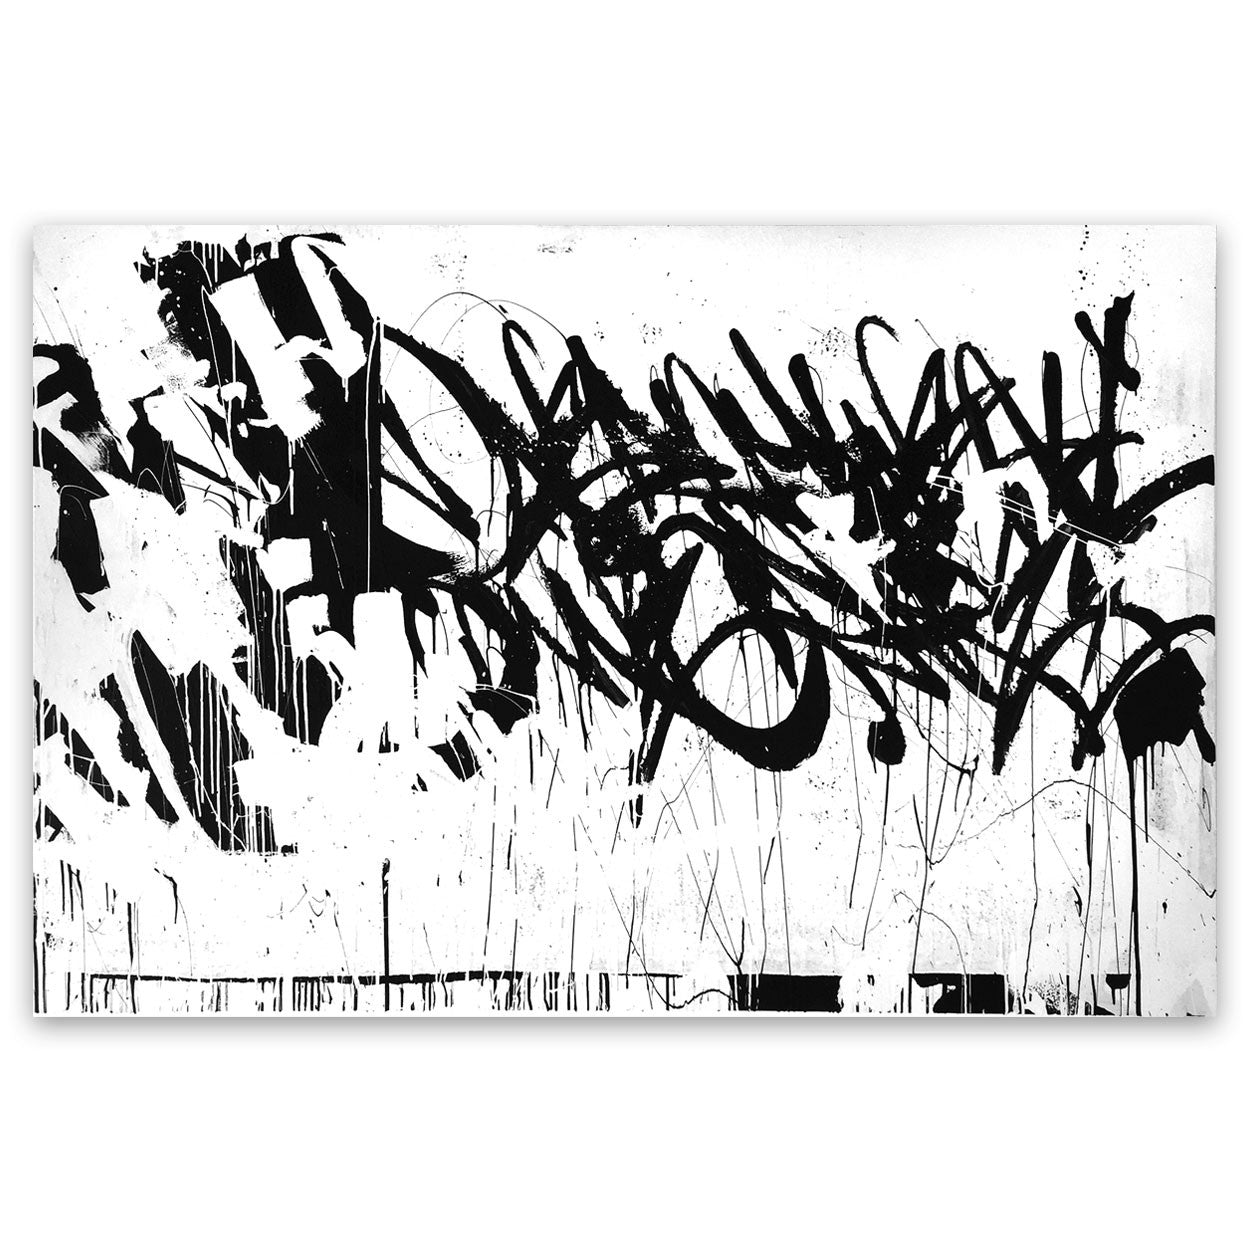 NY Times - 72x48 - Bisco Smith